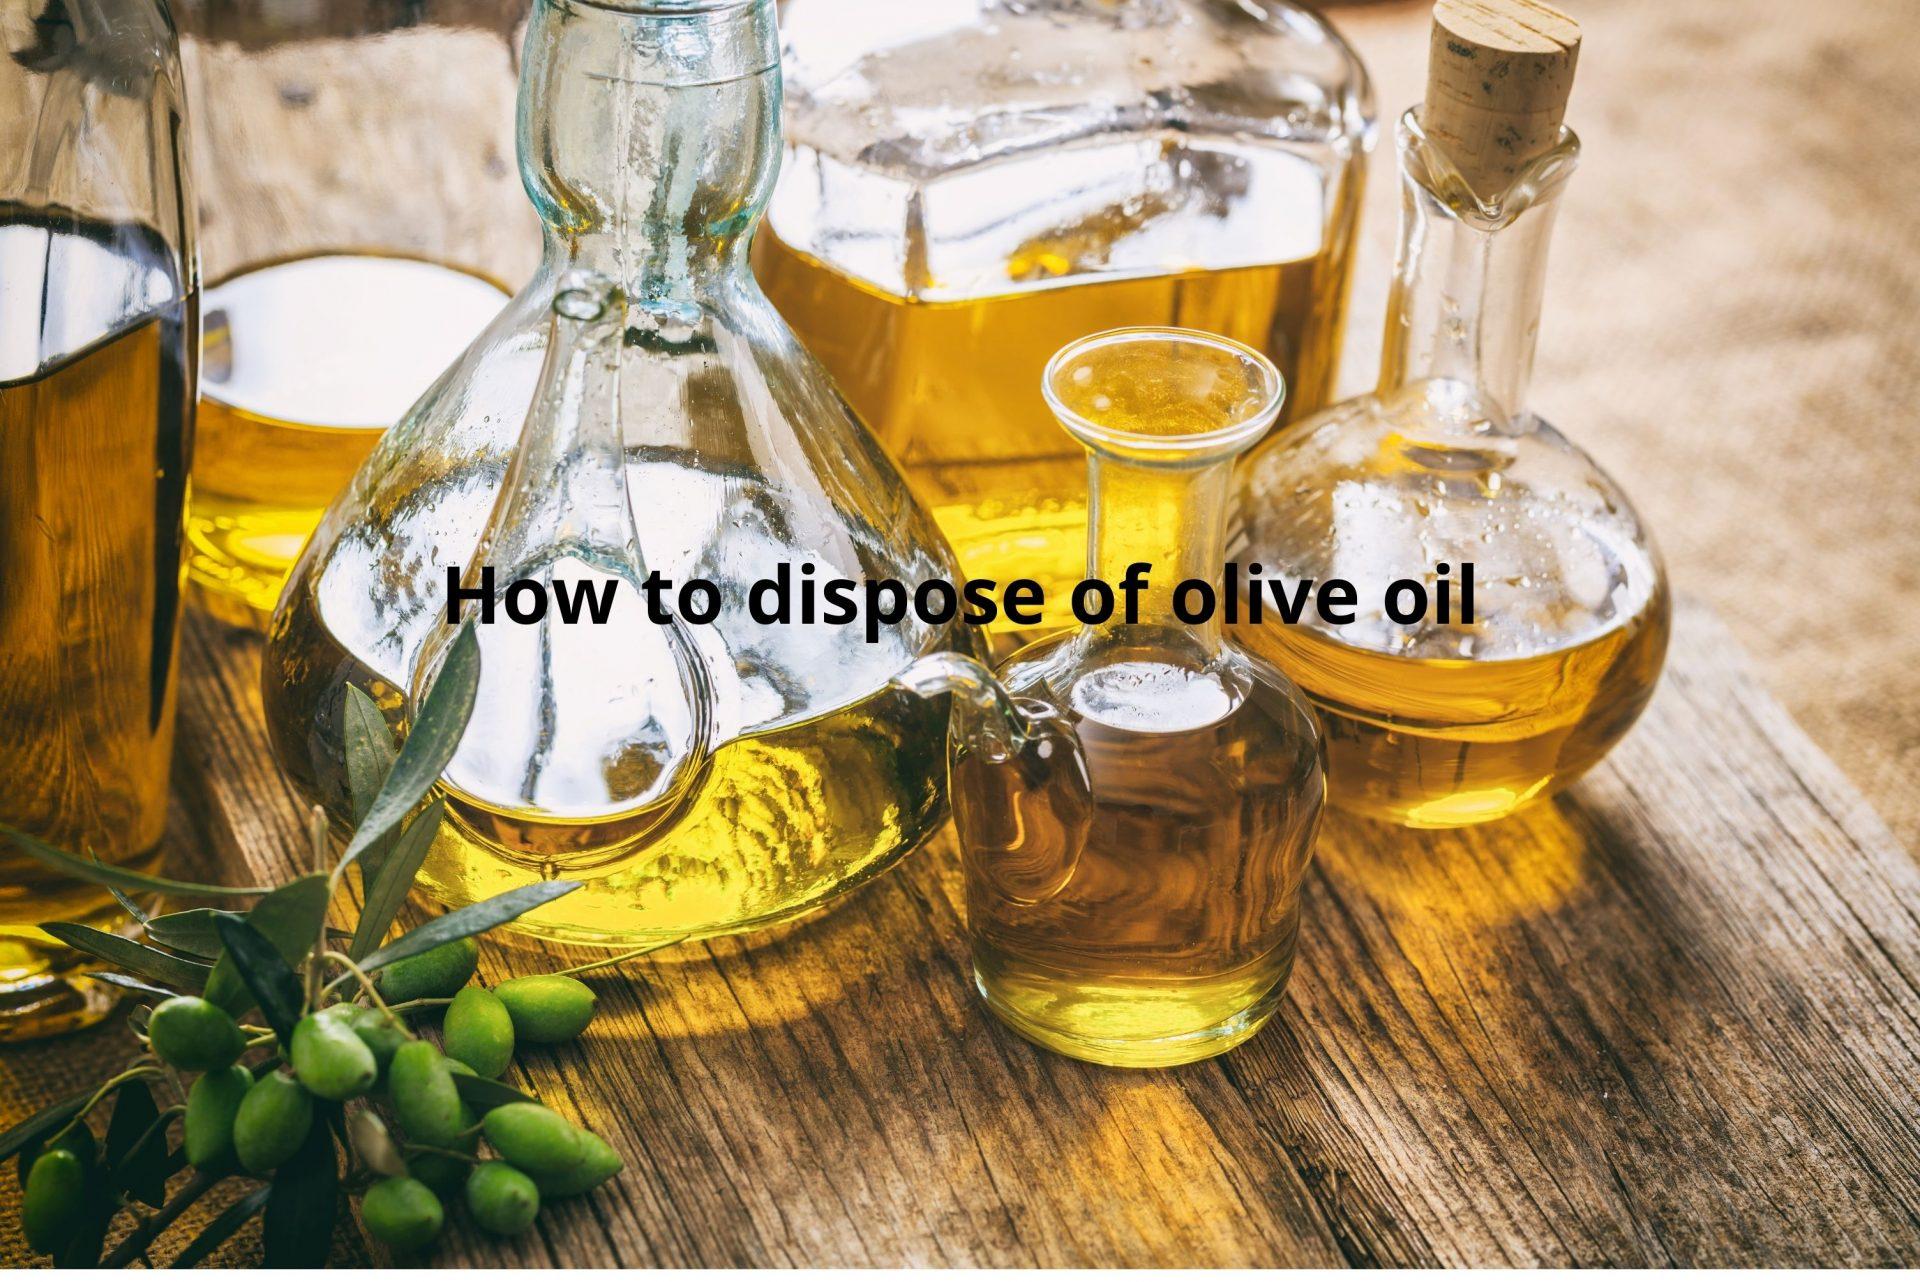 How to dispose of olive oil